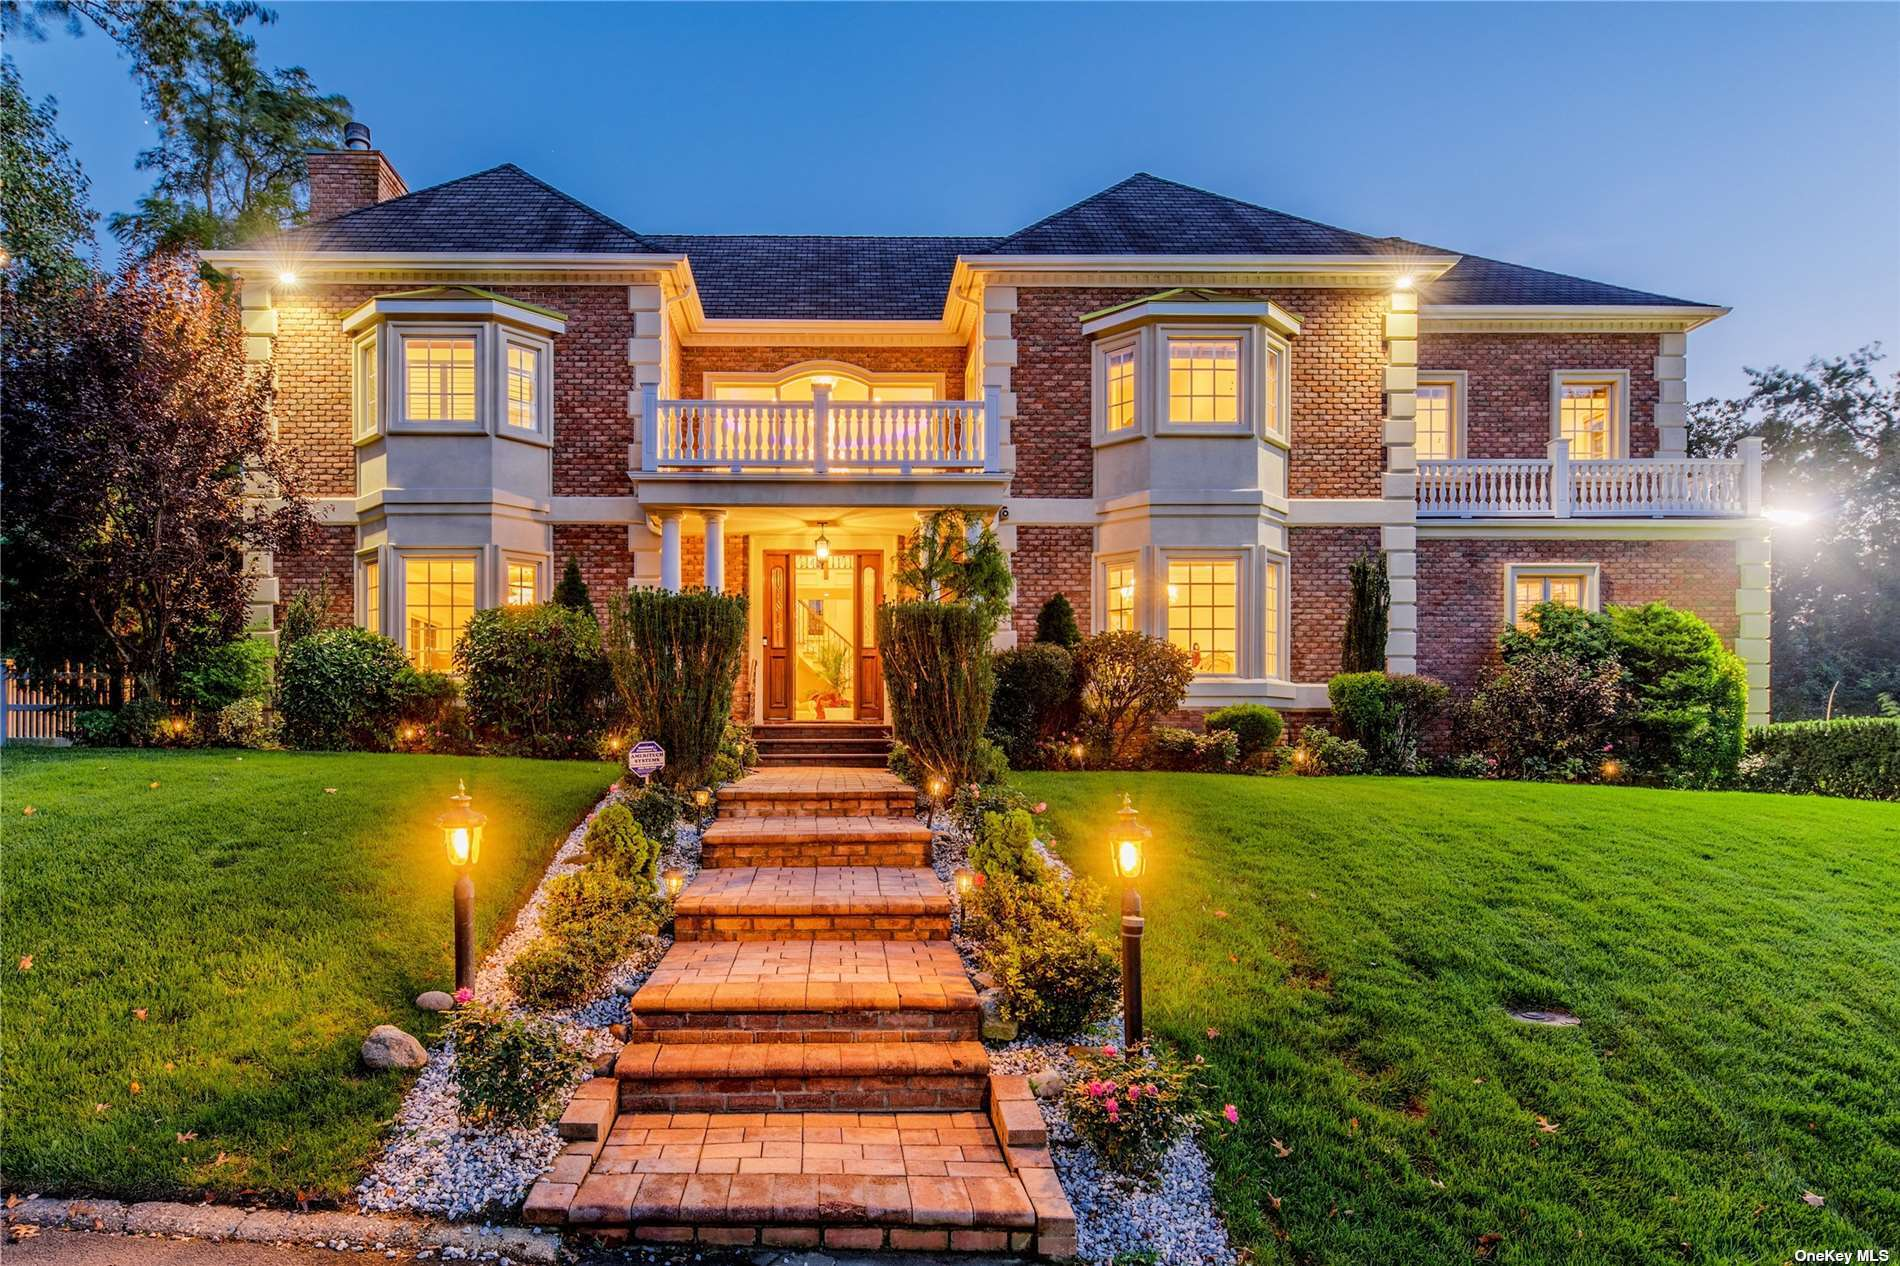 6-Bedroom House In Lake Success